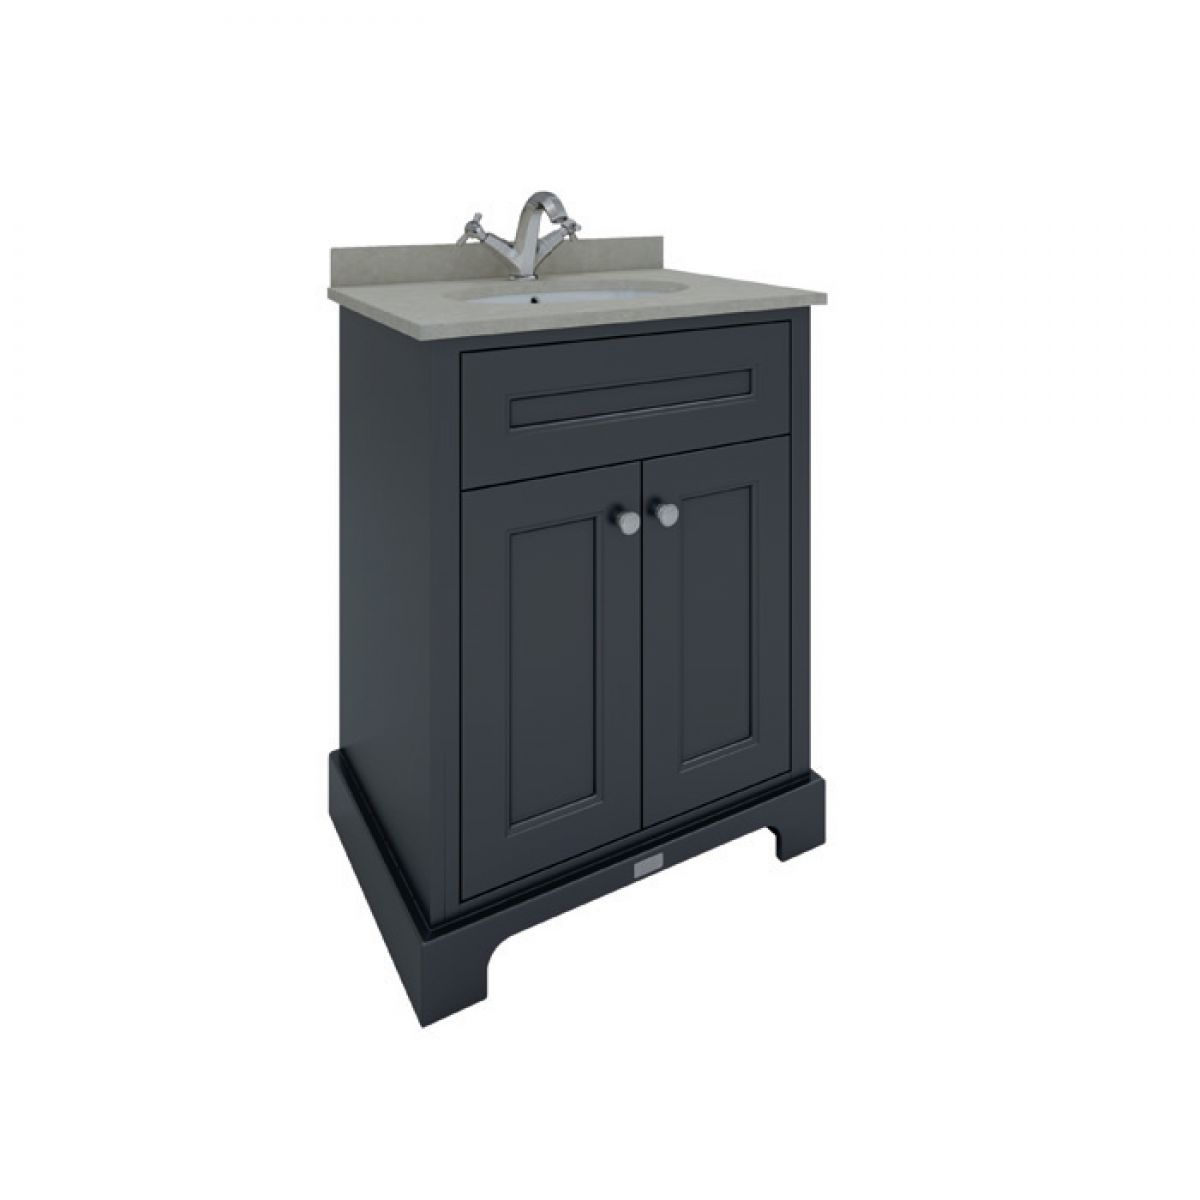 RAK Washington Black Vanity Unit with Grey Countertop 600mm